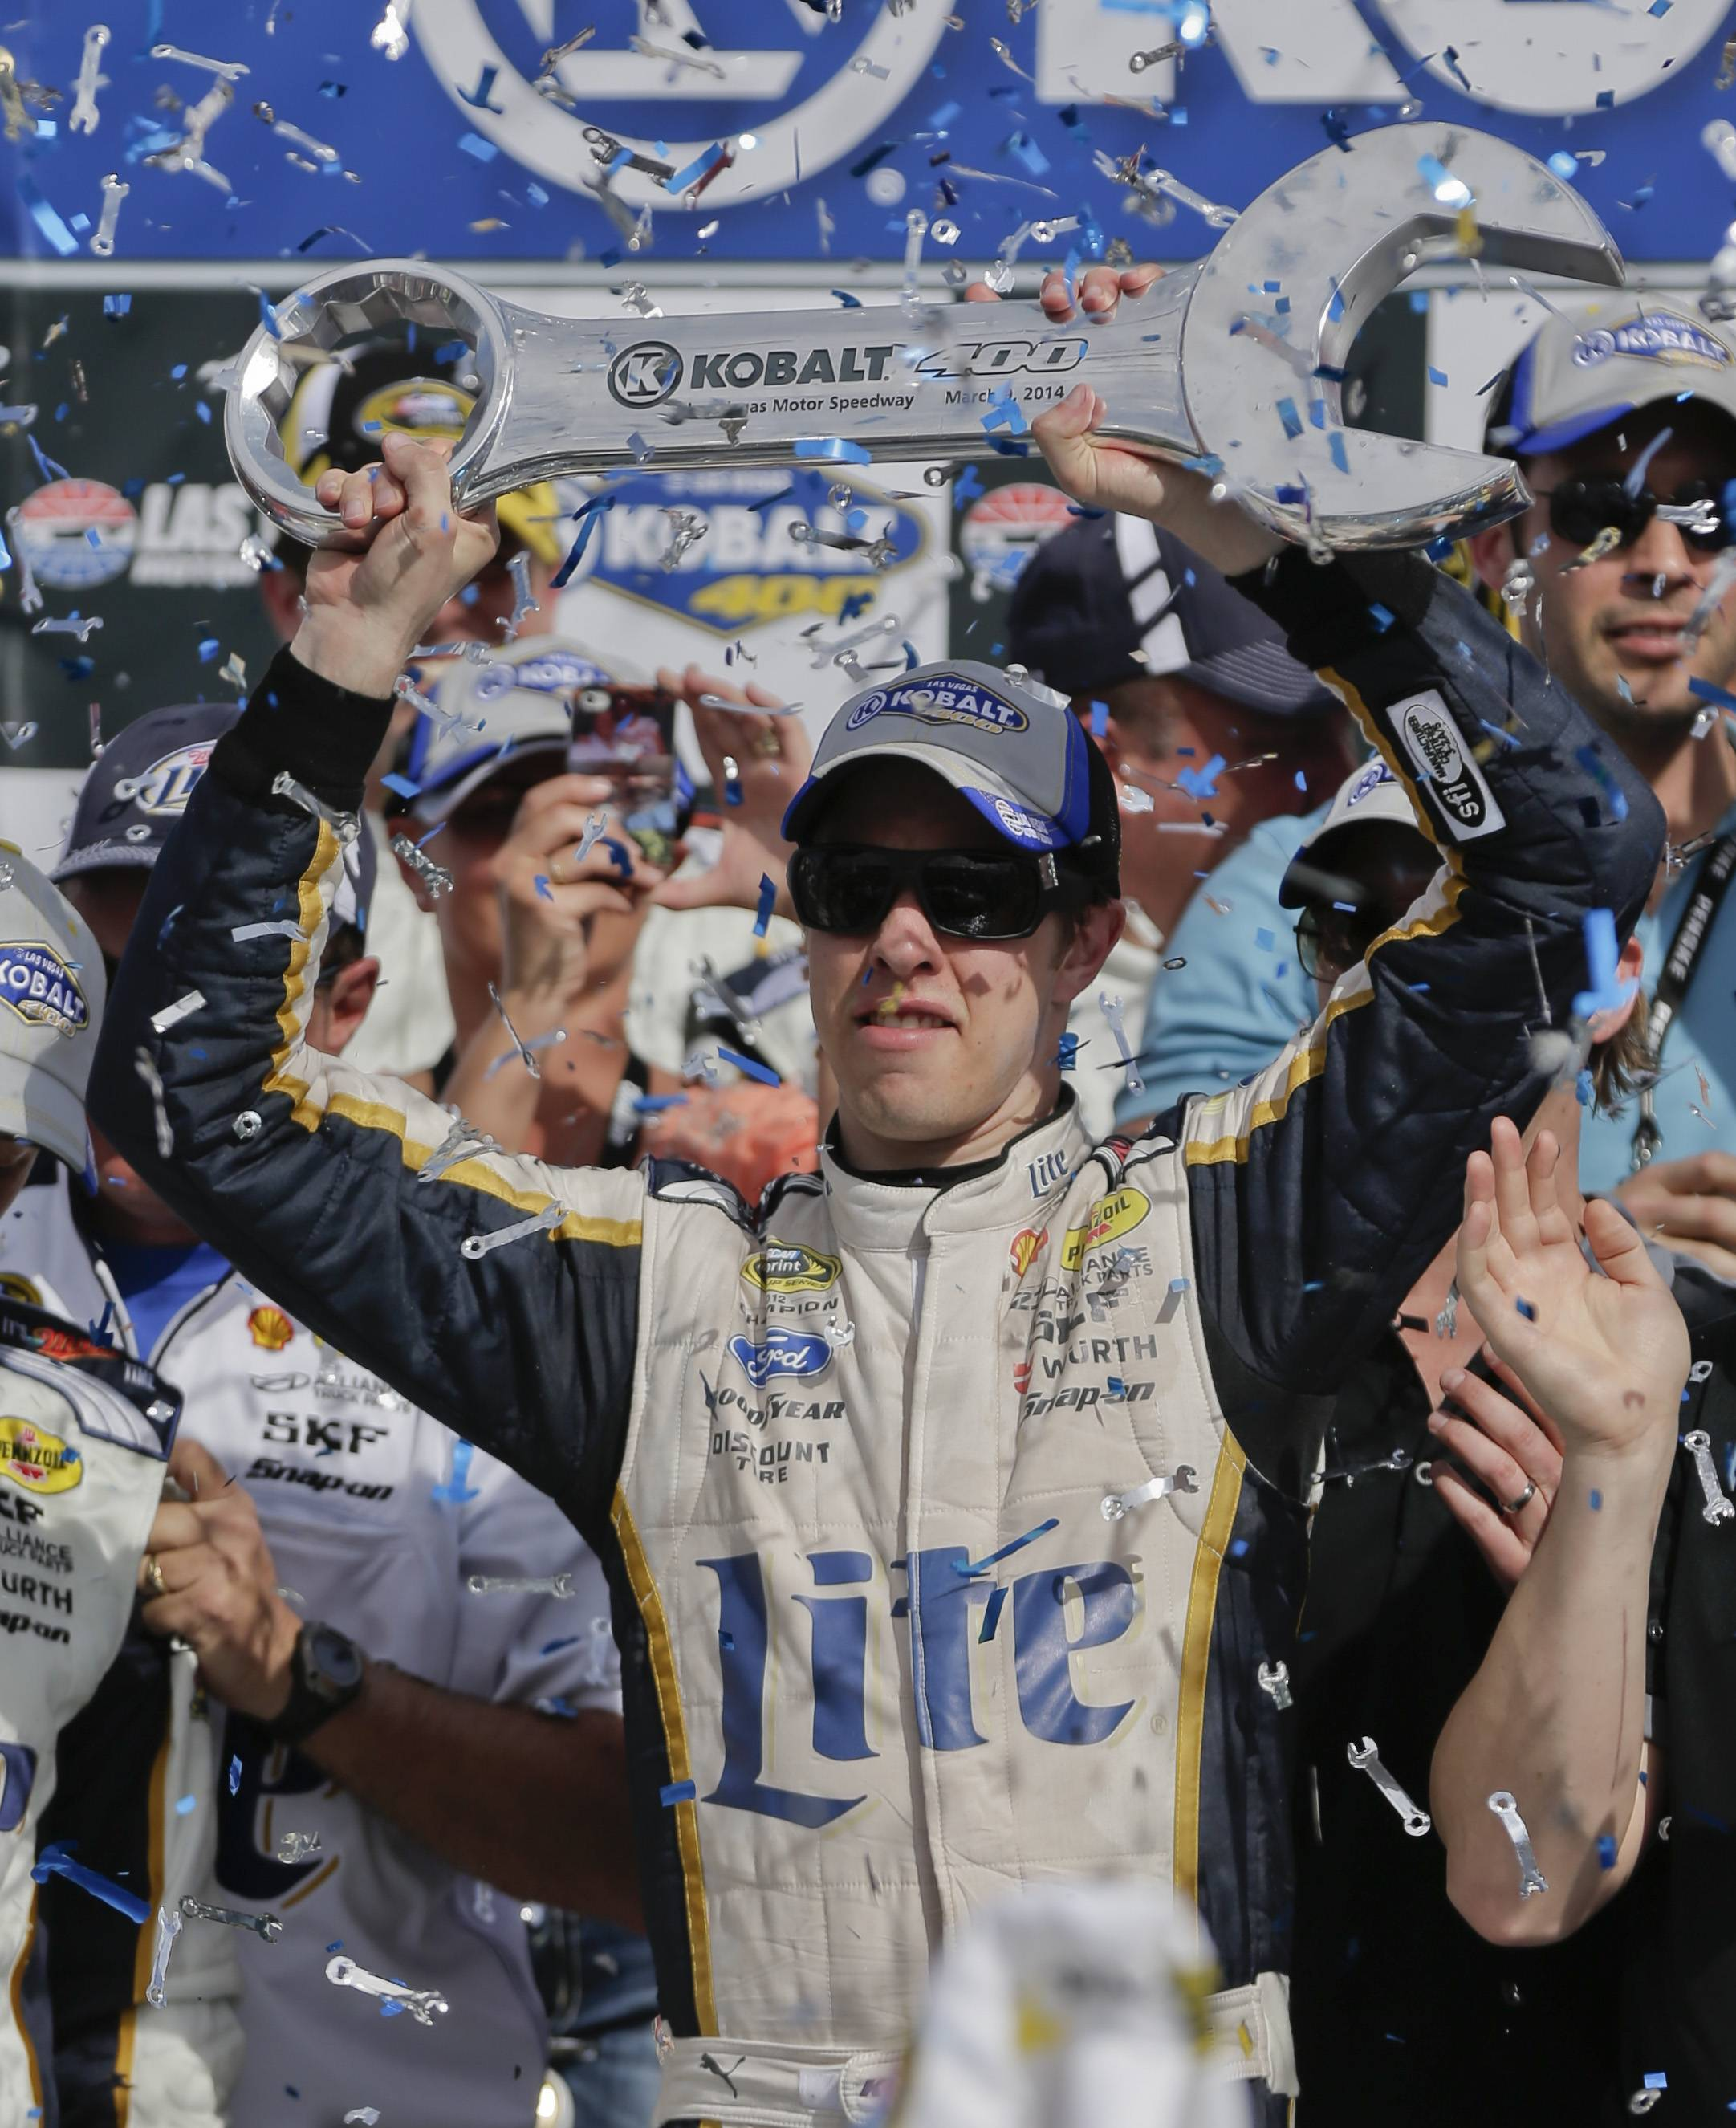 Brad Keselowski holds up the Kobalt 400 trophy after winning a NASCAR Sprint Cup Series auto race in Las Vegas. Keselowski overtook Dale Earnhardt Jr. on the last lap when Earnhardt ran out of fuel.